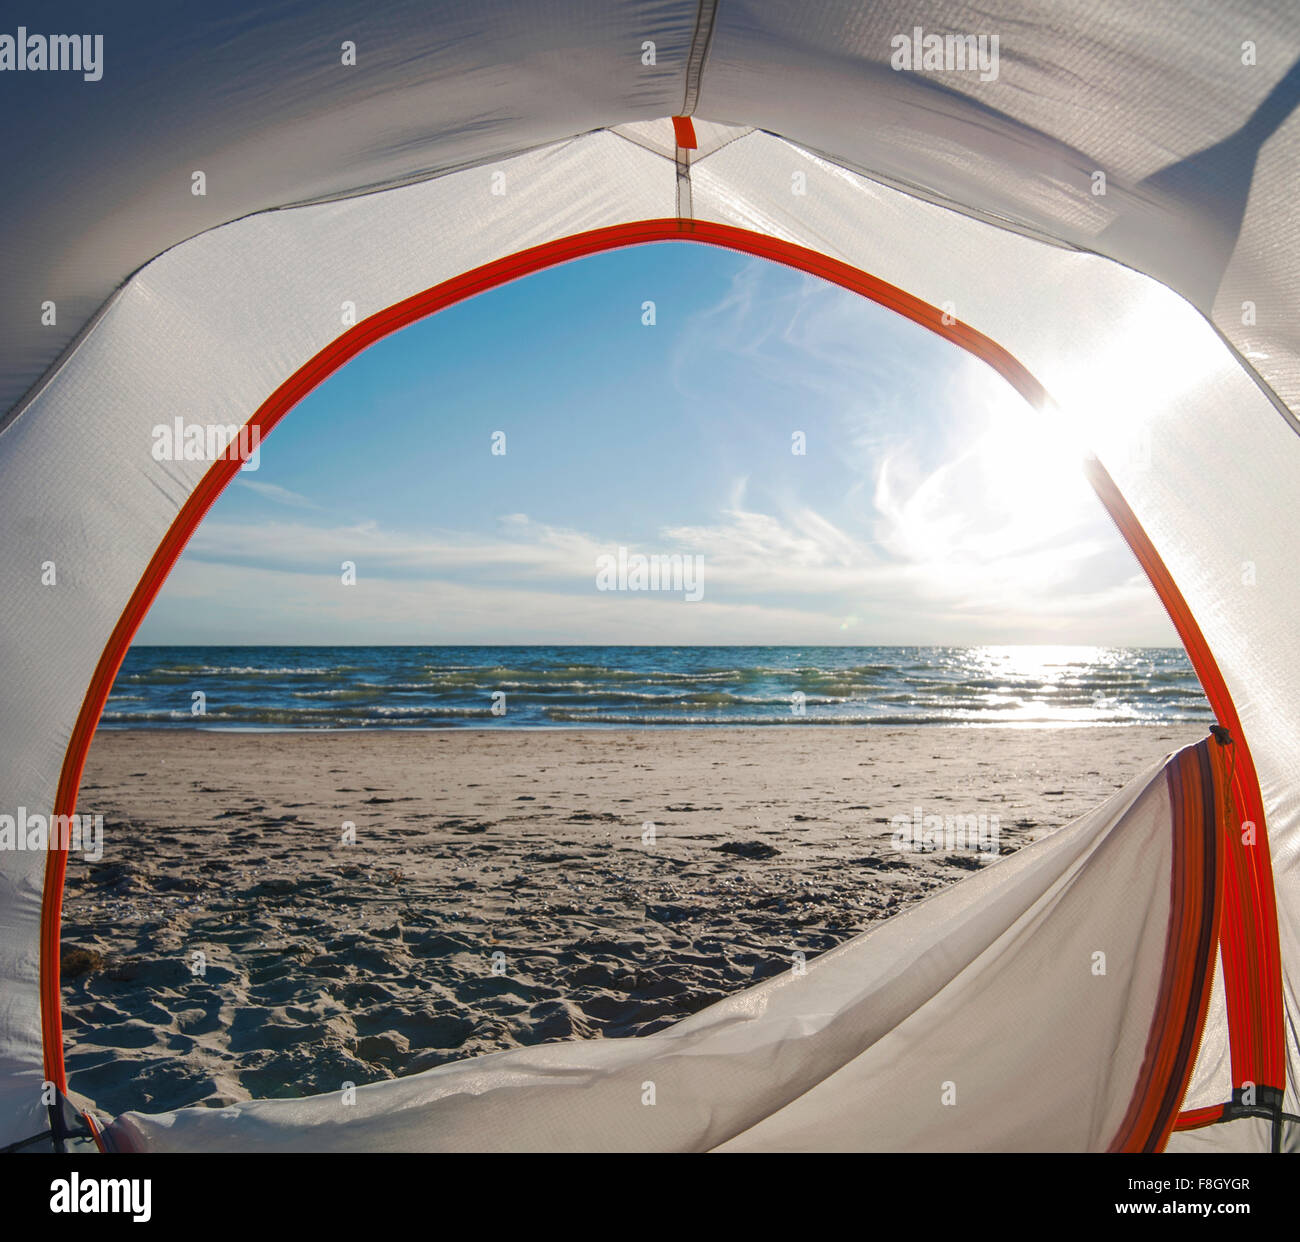 Open camping tent door on beach - Stock Image